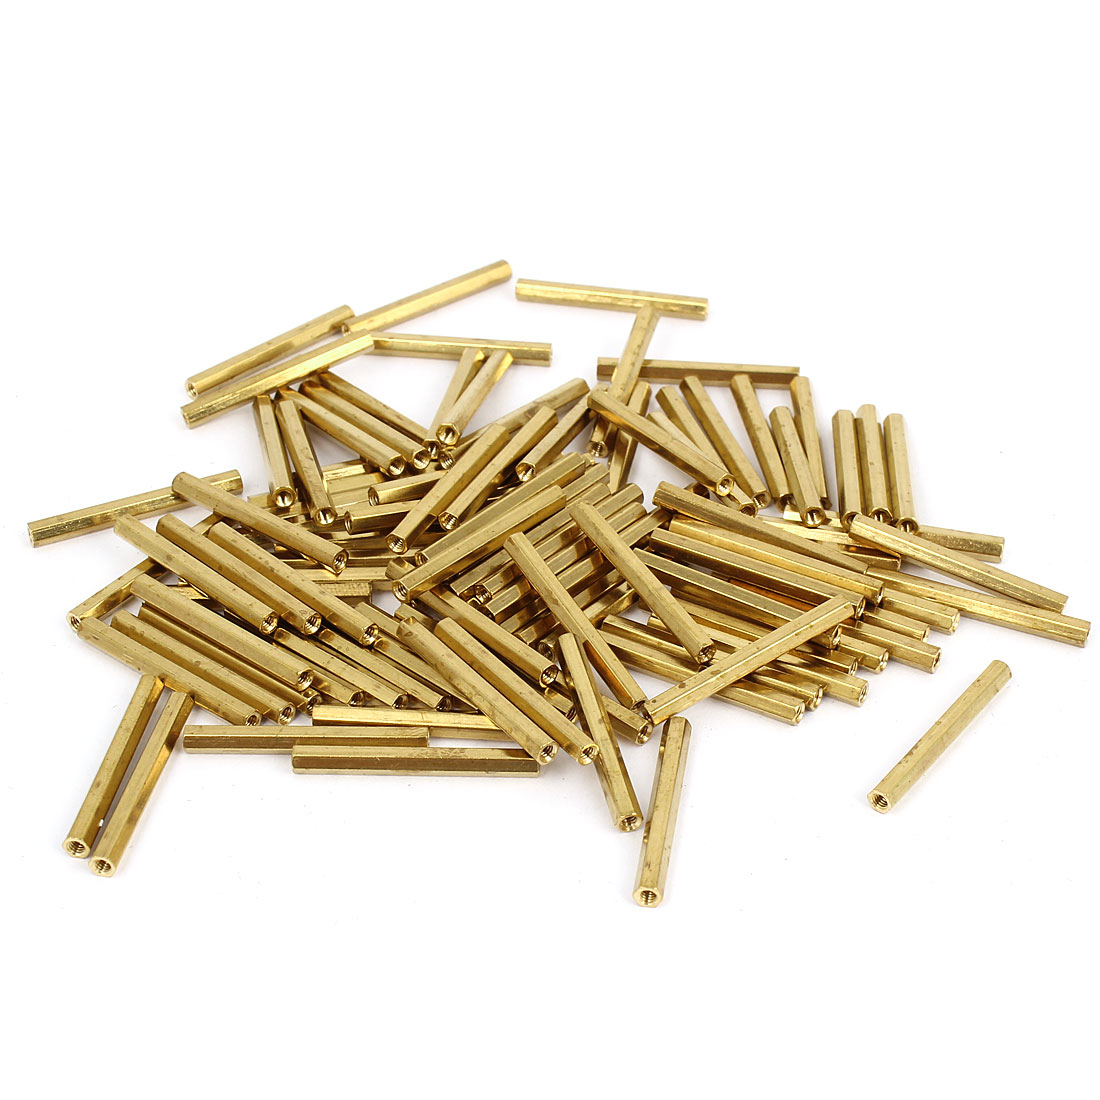 100 Pcs M2 Female Thread Brass Pillar Standoff Hexagonal Spacer 28mm Length